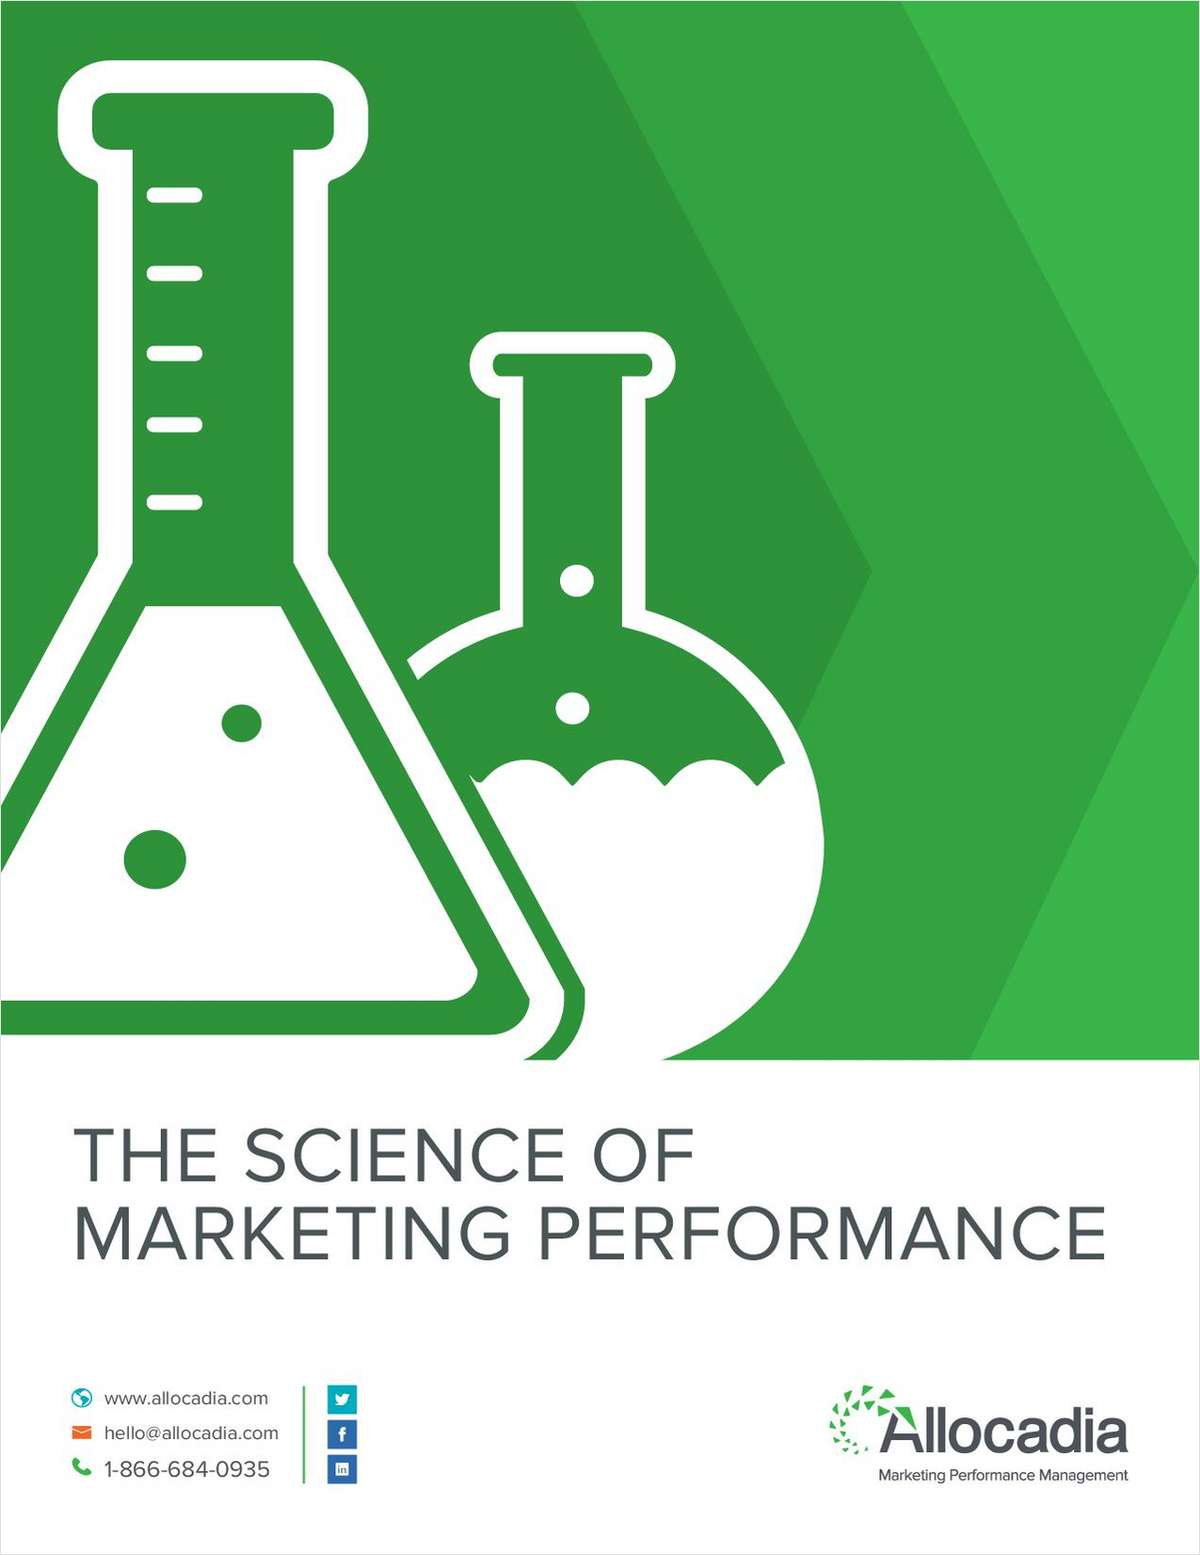 The Science of Marketing Performance